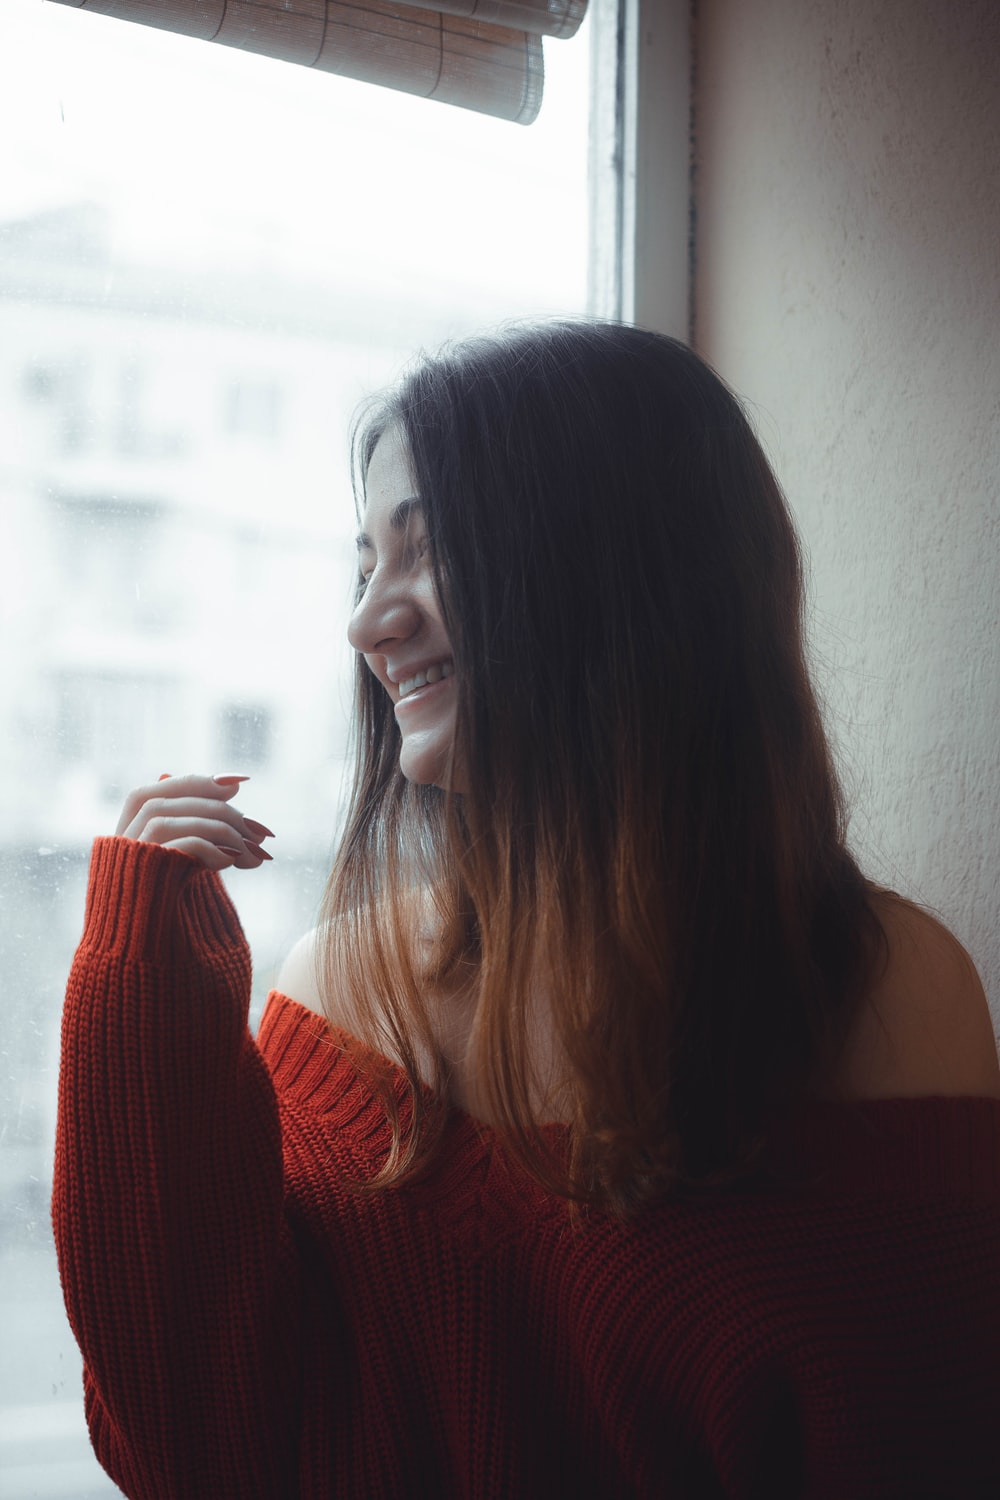 smiling woman in red off-shoulder sweater looking outside window